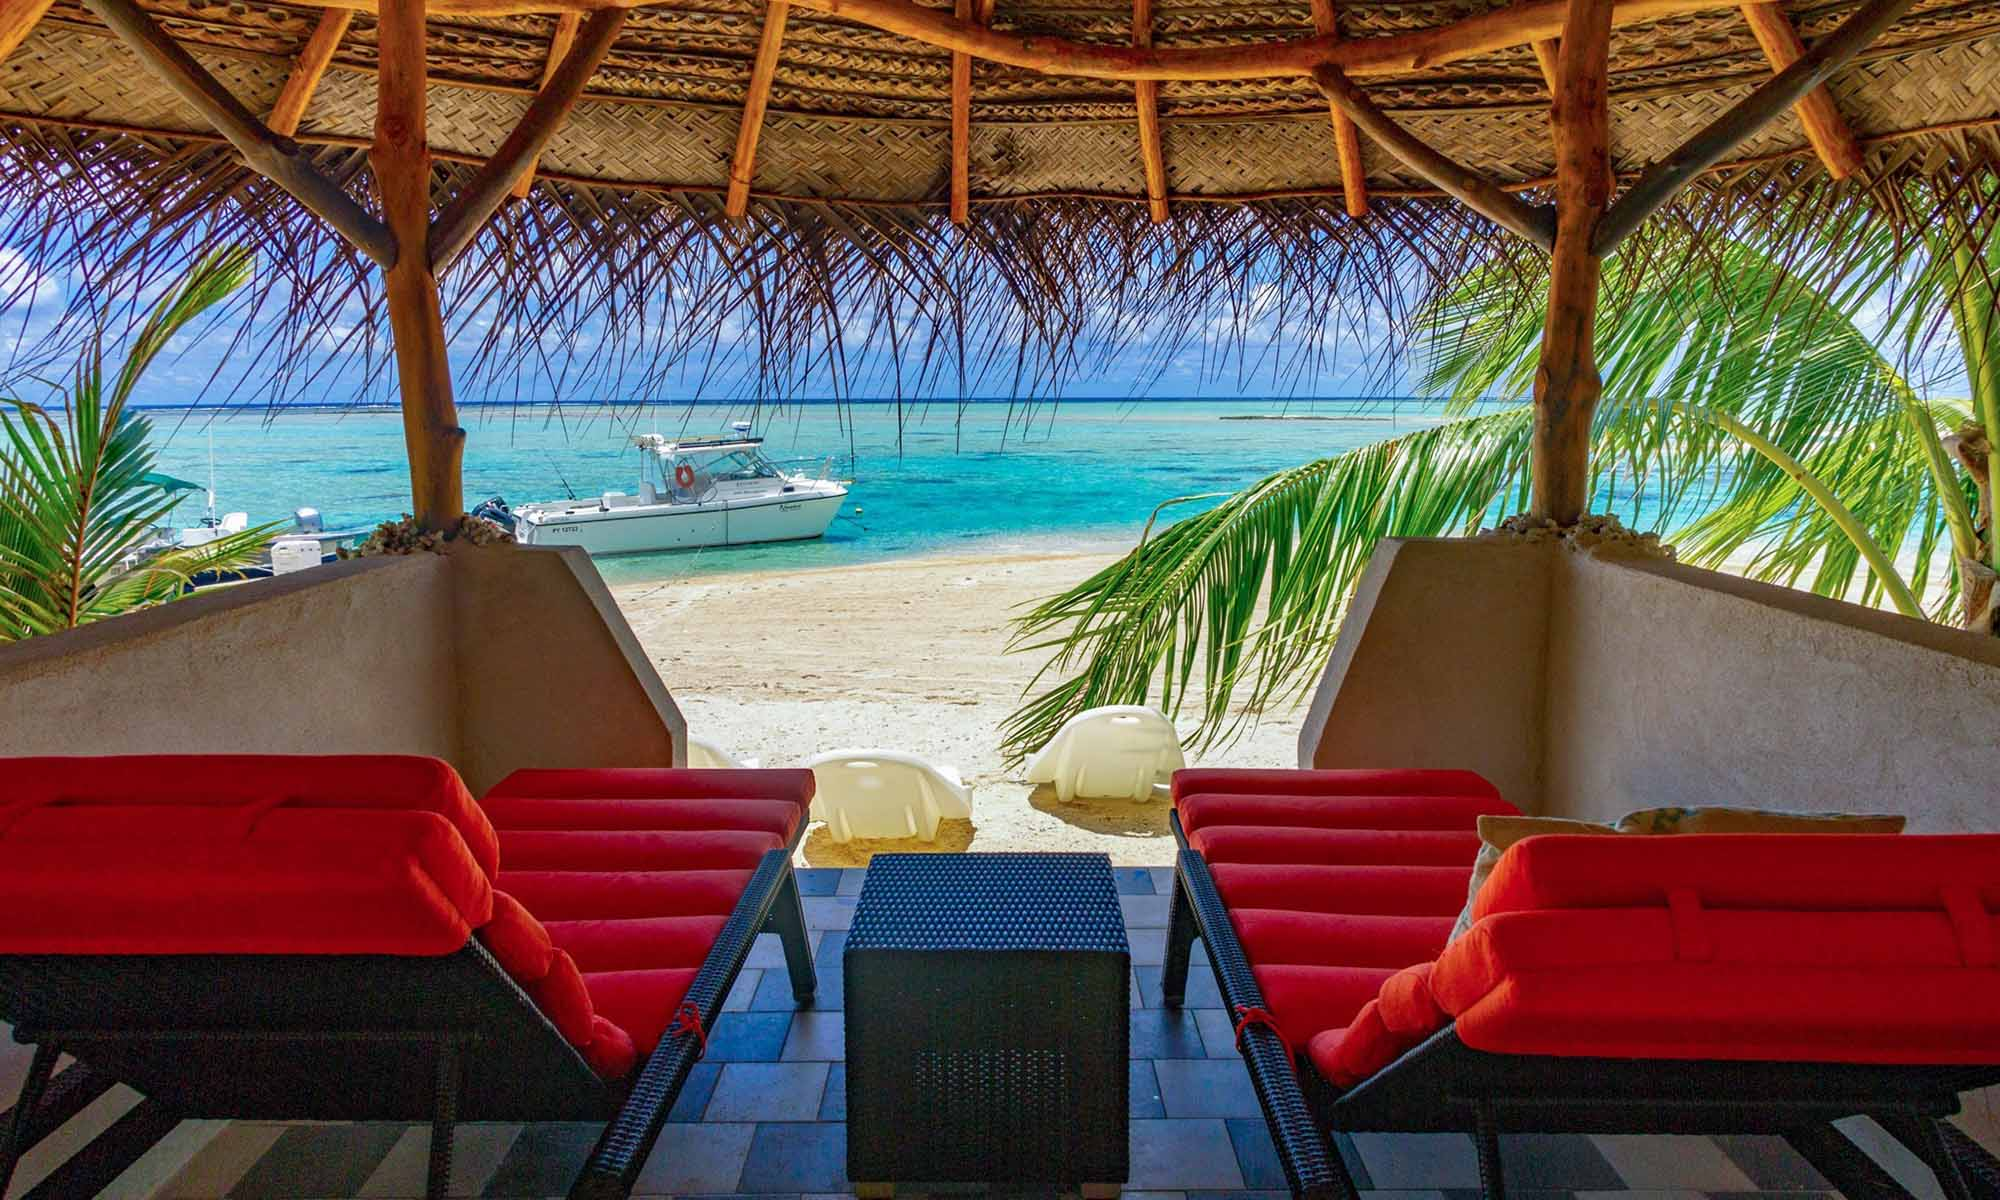 Ninamu Resort, View from the Beach Cabanas